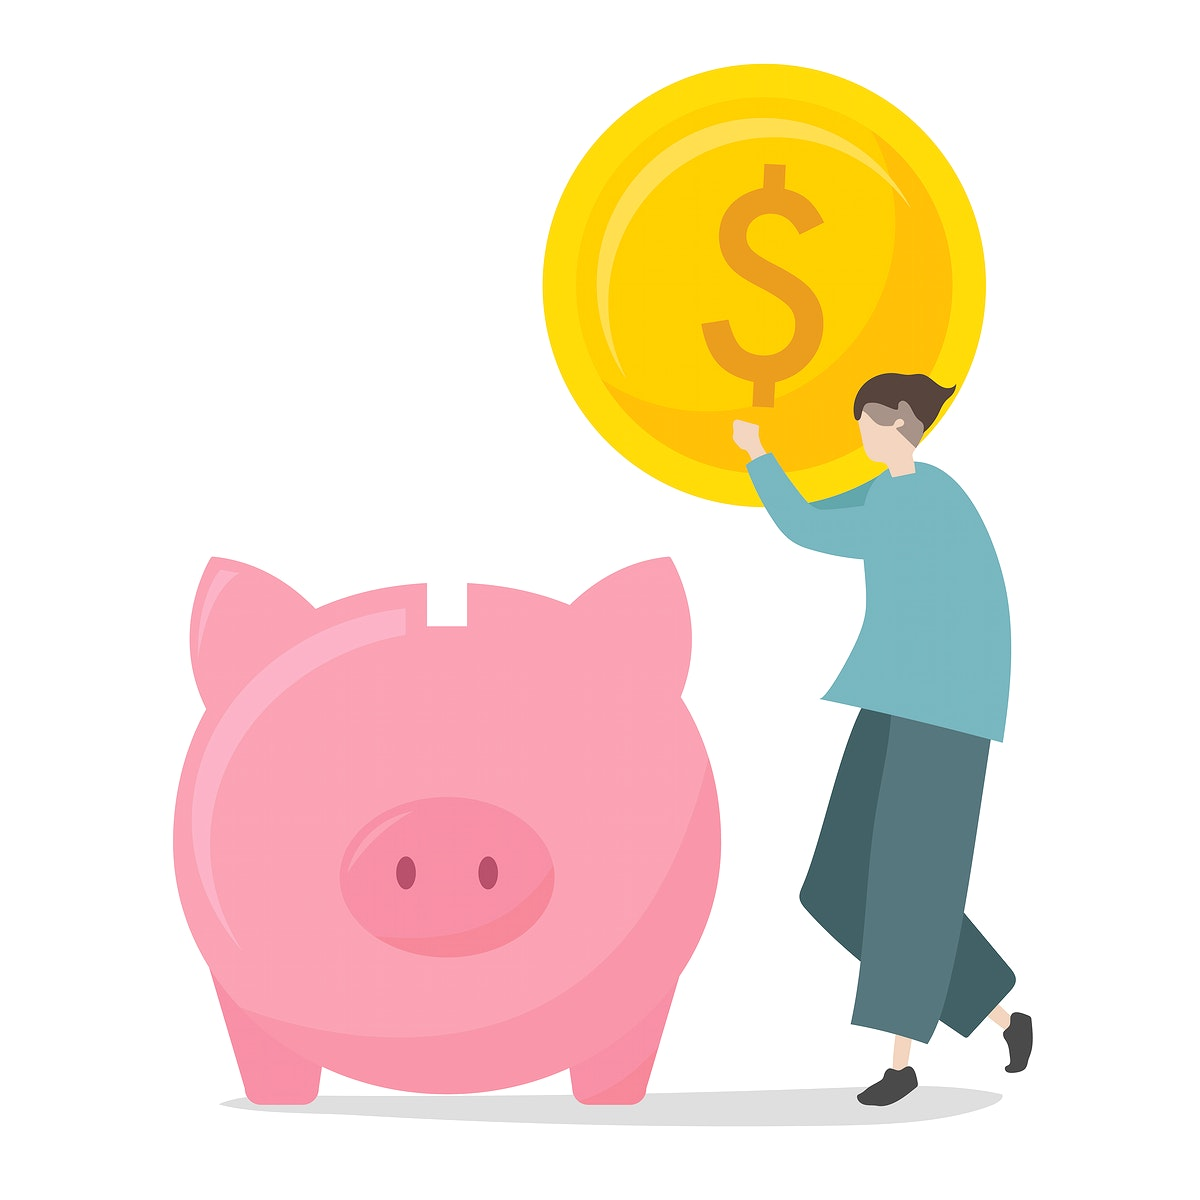 Illustration of character saving in piggy bank